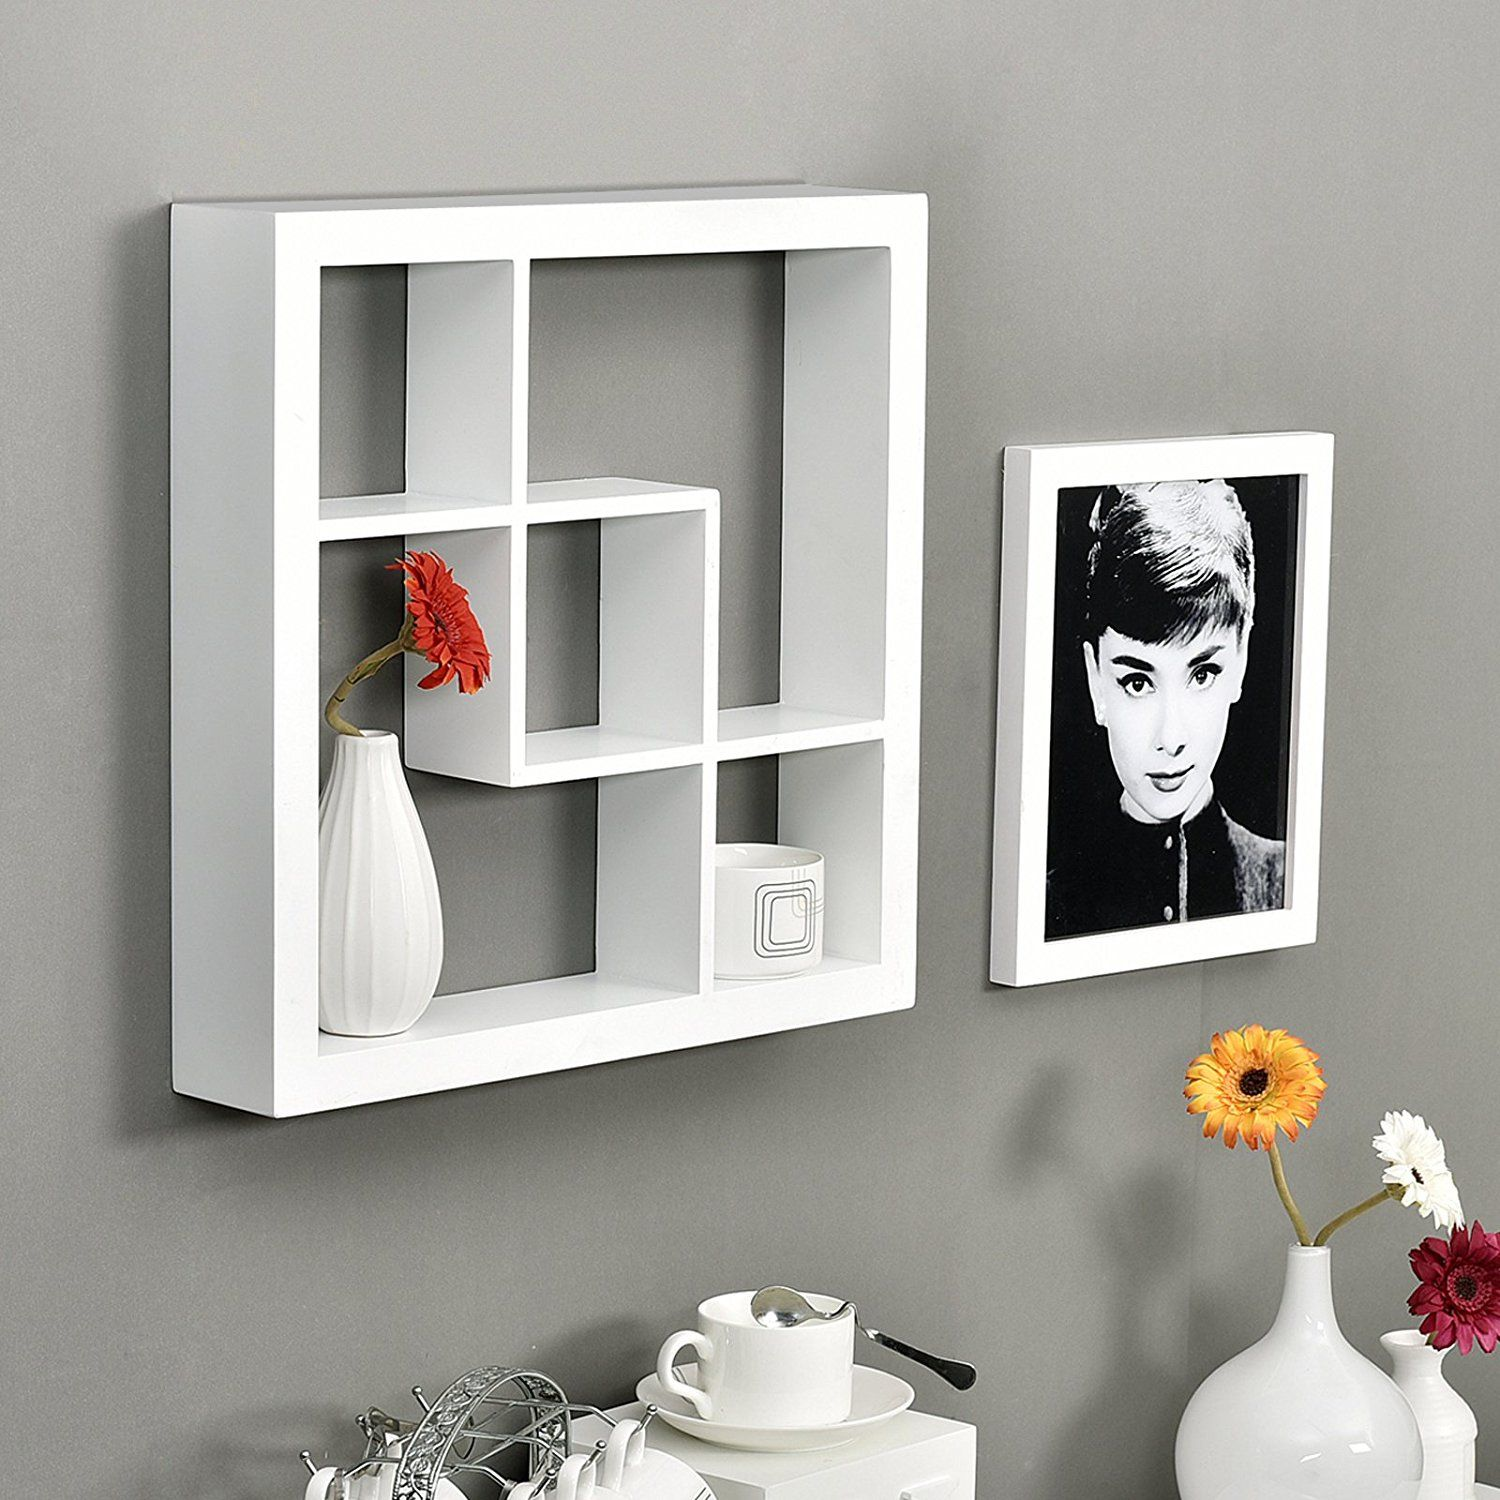 Welland Madison 16 Square Decorative Wall Shelf White Wall Shelf Decor Floating Wall Shelves Wall Shelves